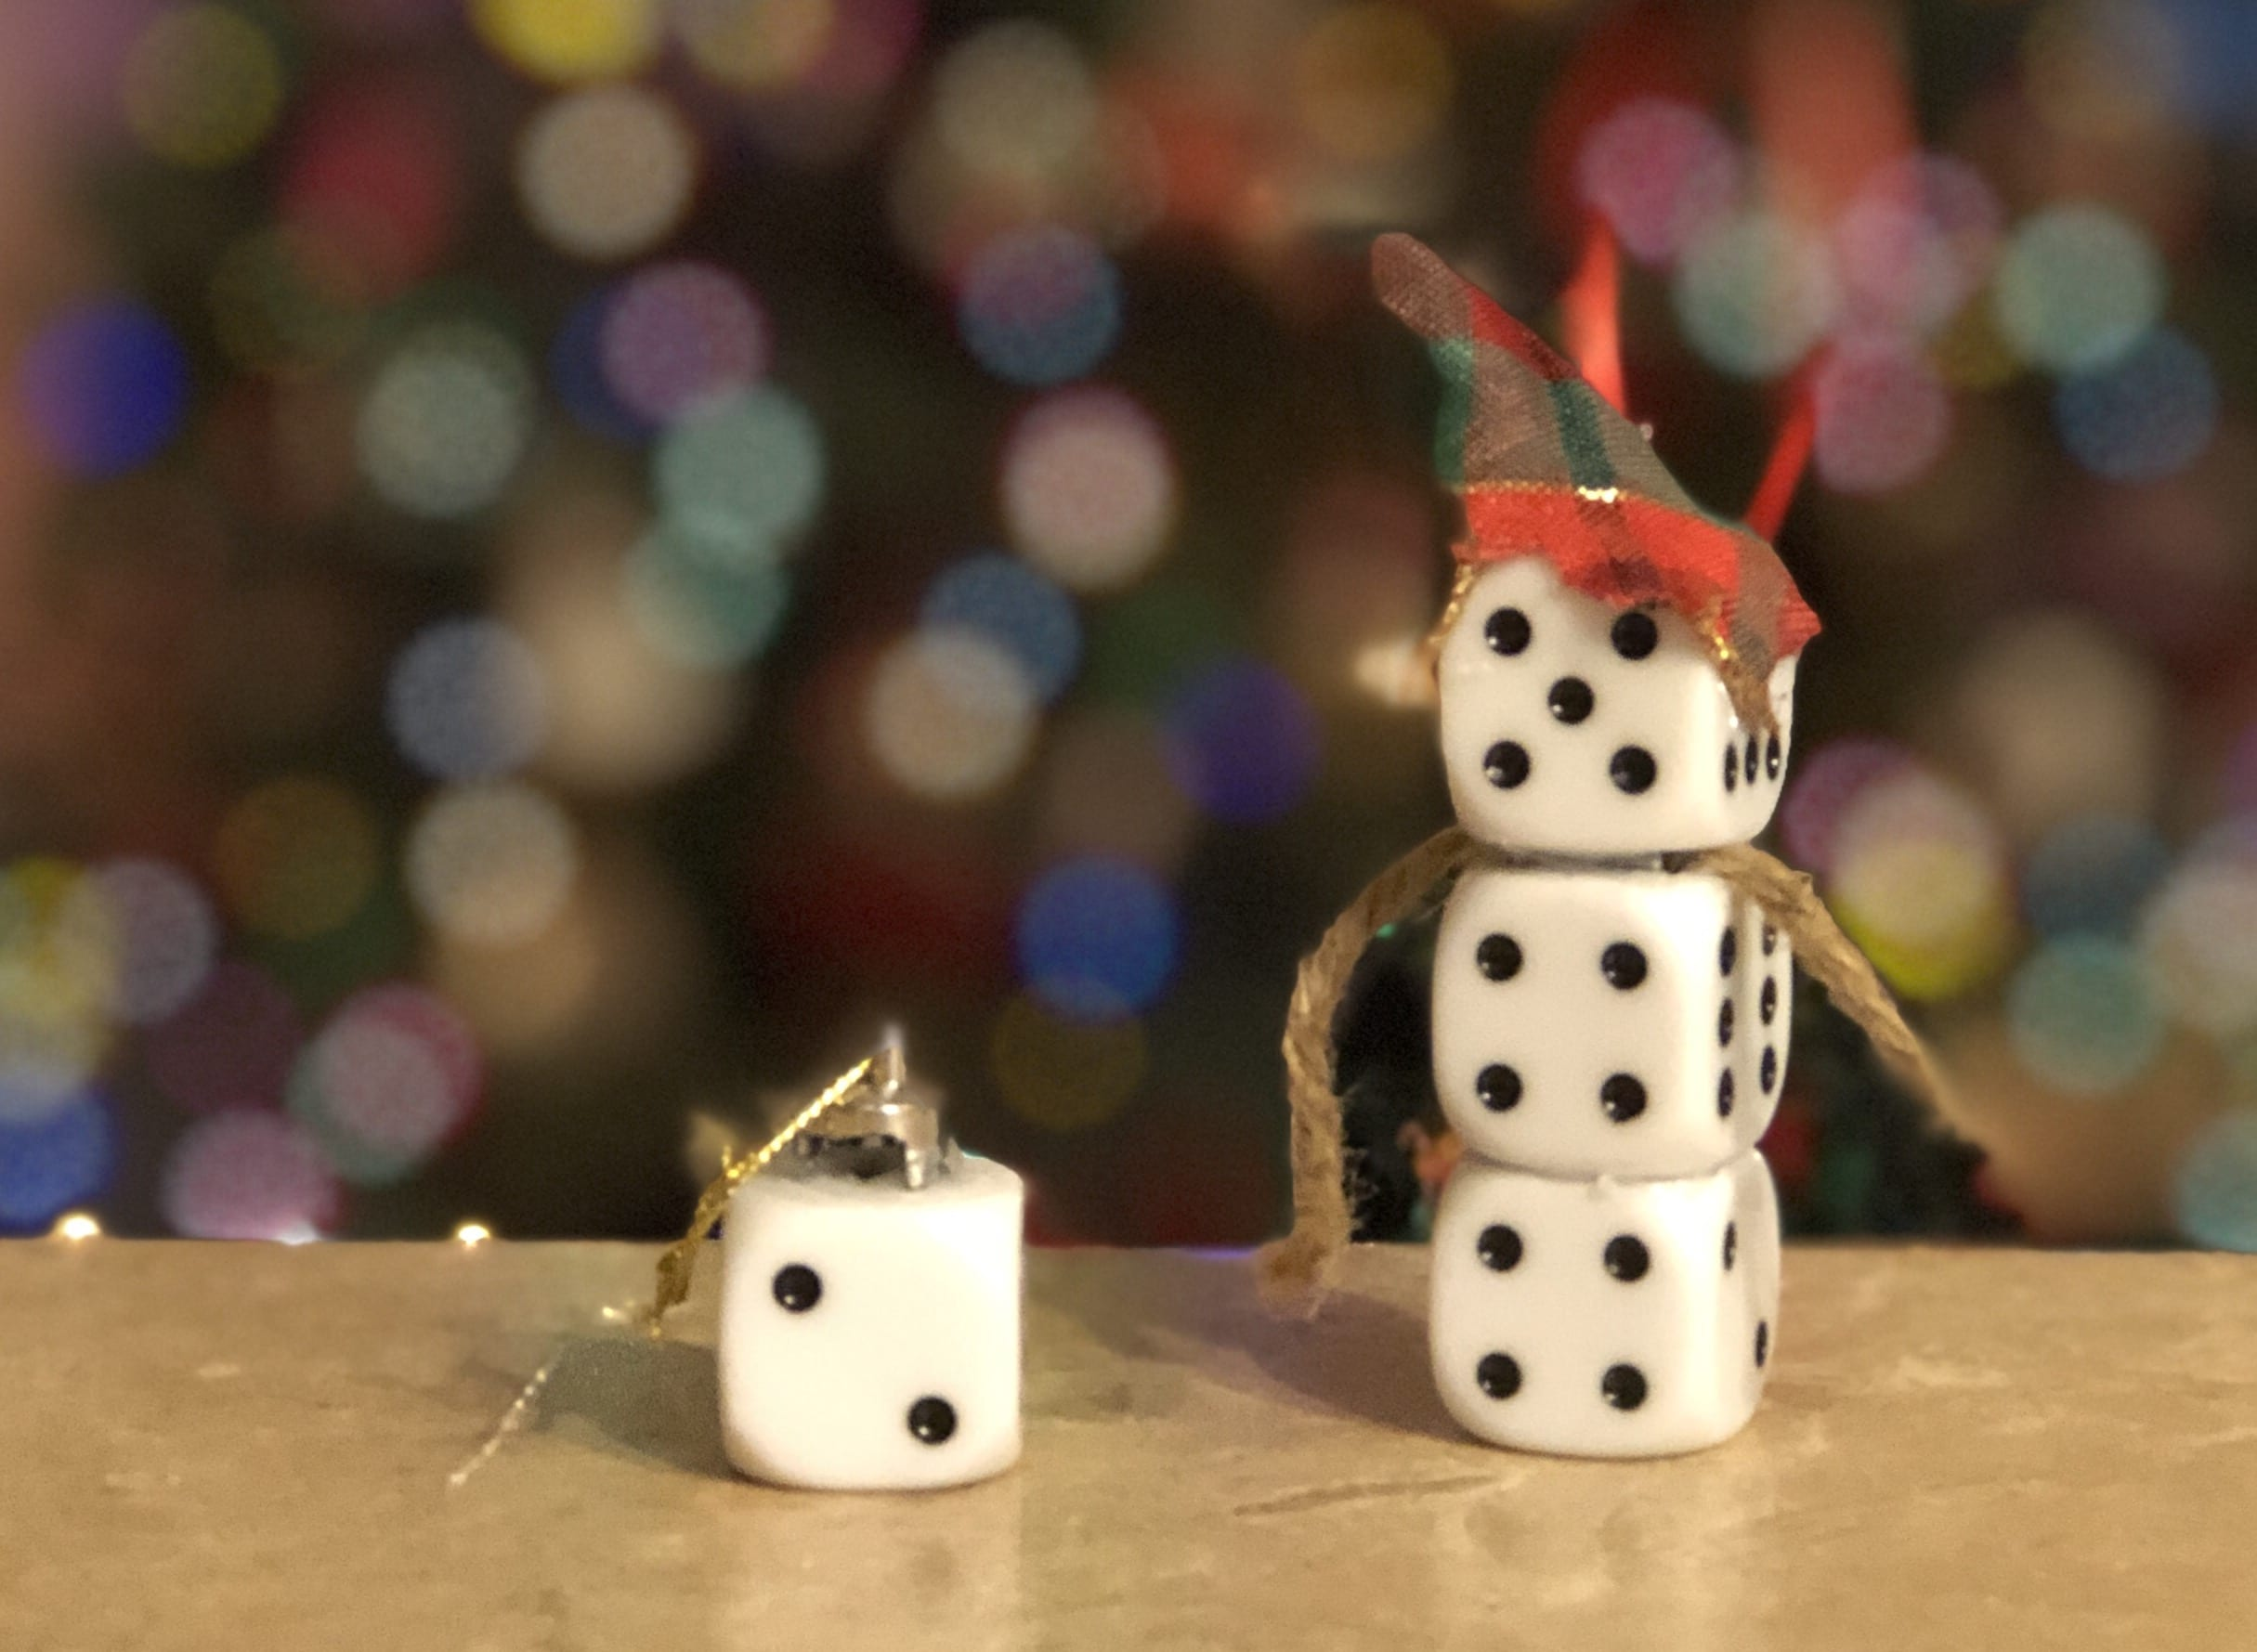 Love to play games? With a few simple craft supplies and a little imagination, you can create Christmas ornaments using game pieces.